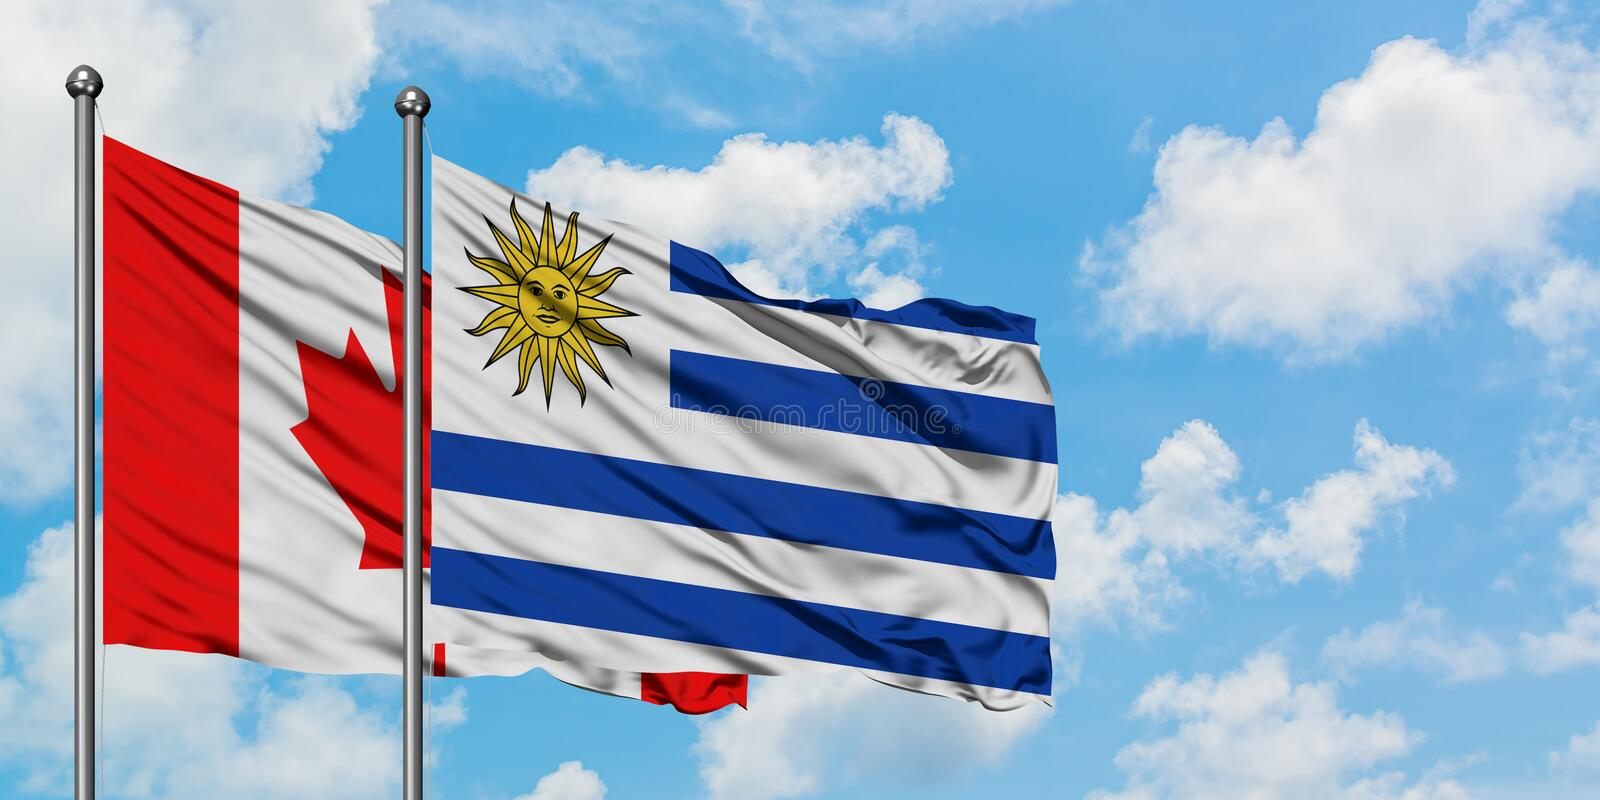 Canada and Uruguay flag waving in the wind against white cloudy blue sky together. Diplomacy concept, international relations. Diplomacy concept, international stock image